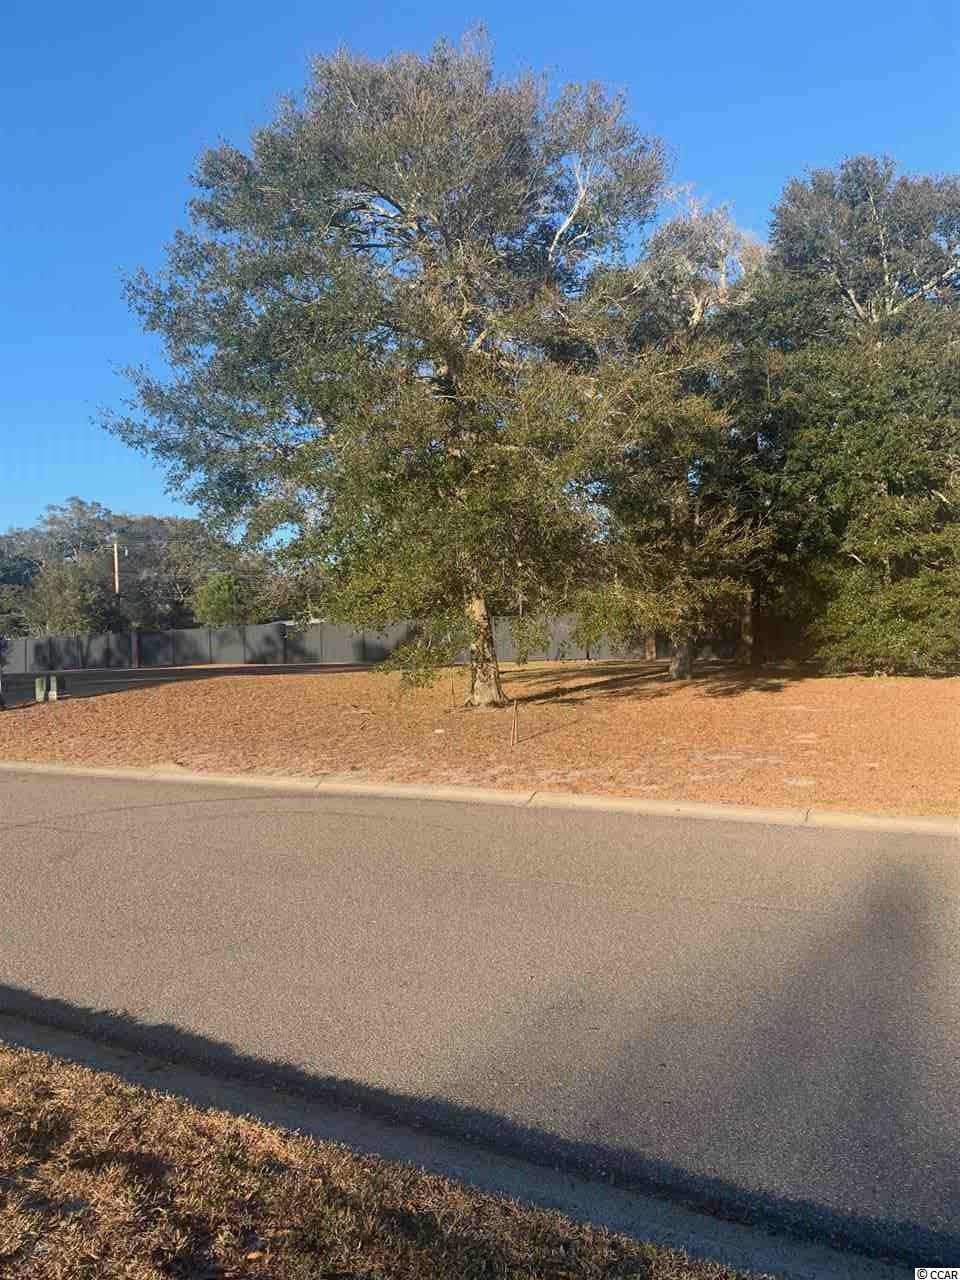 Don't miss an opportunity to own one of the last marsh view lots in beautiful Charleston Landing, located on the marsh in the Cherry Grove section of North Myrtle Beach. Build your dream home and enjoy breathtaking views and ocean breezes from this pristine lot, which features several hardwood trees and  convenient access to the waterfront community pool and amenity center, which are within walking distance. Charleston Landing features several amenities including this marsh front pool and clubhouse, playground and basketball court, fishing ponds with gazebos and sidewalks for walking and biking, all conveniently located to the shopping, dining, entertainment and beautiful beaches that Cherry Grove and North Myrtle Beach have to offer.